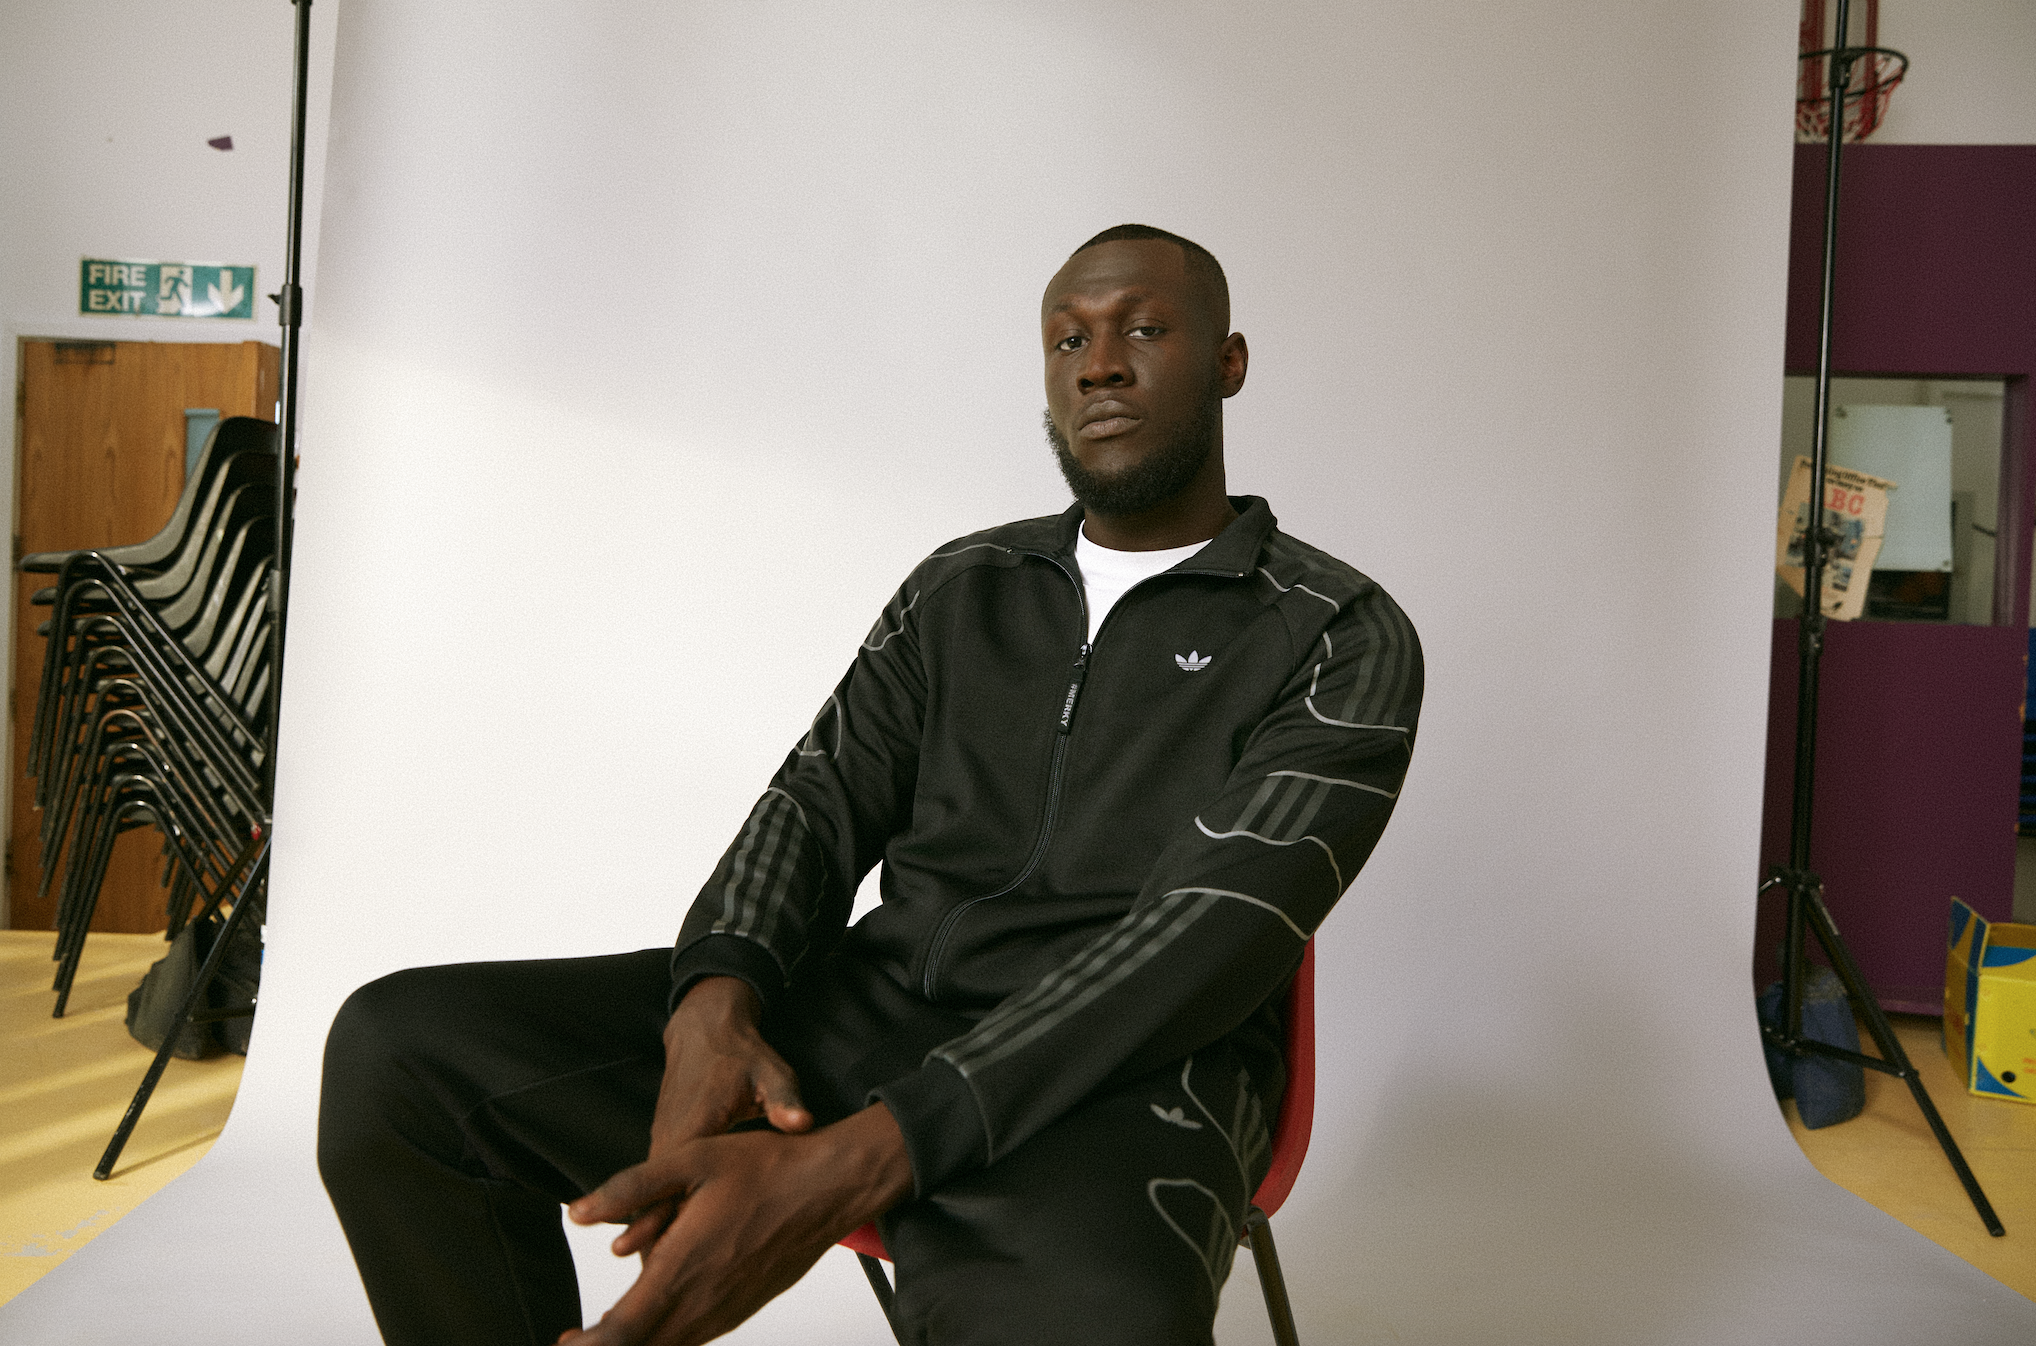 Stormzy   adidas Originals Just Launched a New Partnership - Trapped ... da7322f7902